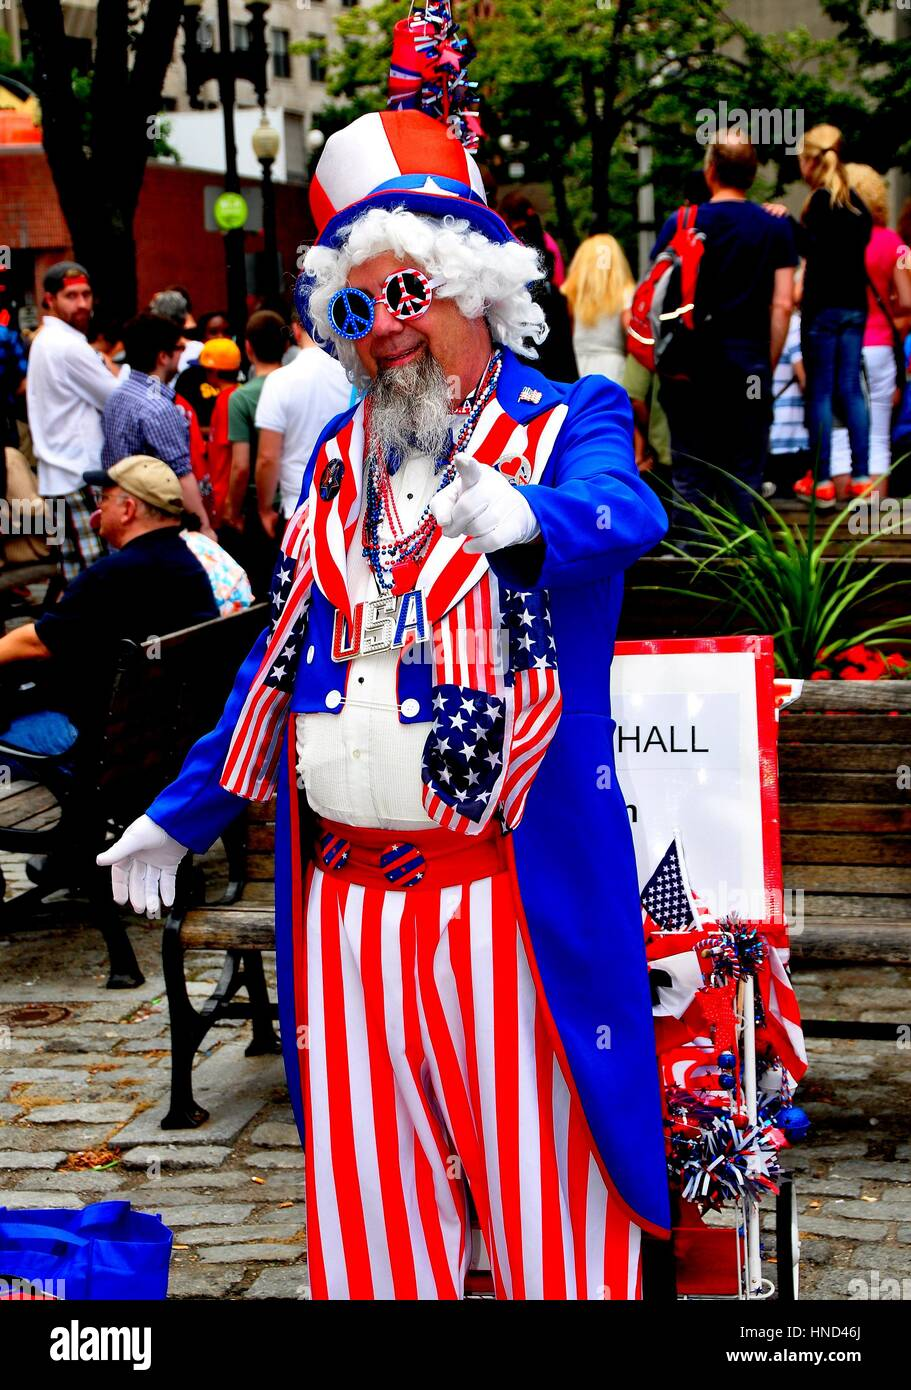 Boston, Massachusetts - July 12, 2013:   Man dressed as Uncle Sam at Quincy Market entices tourists to pose for - Stock Image